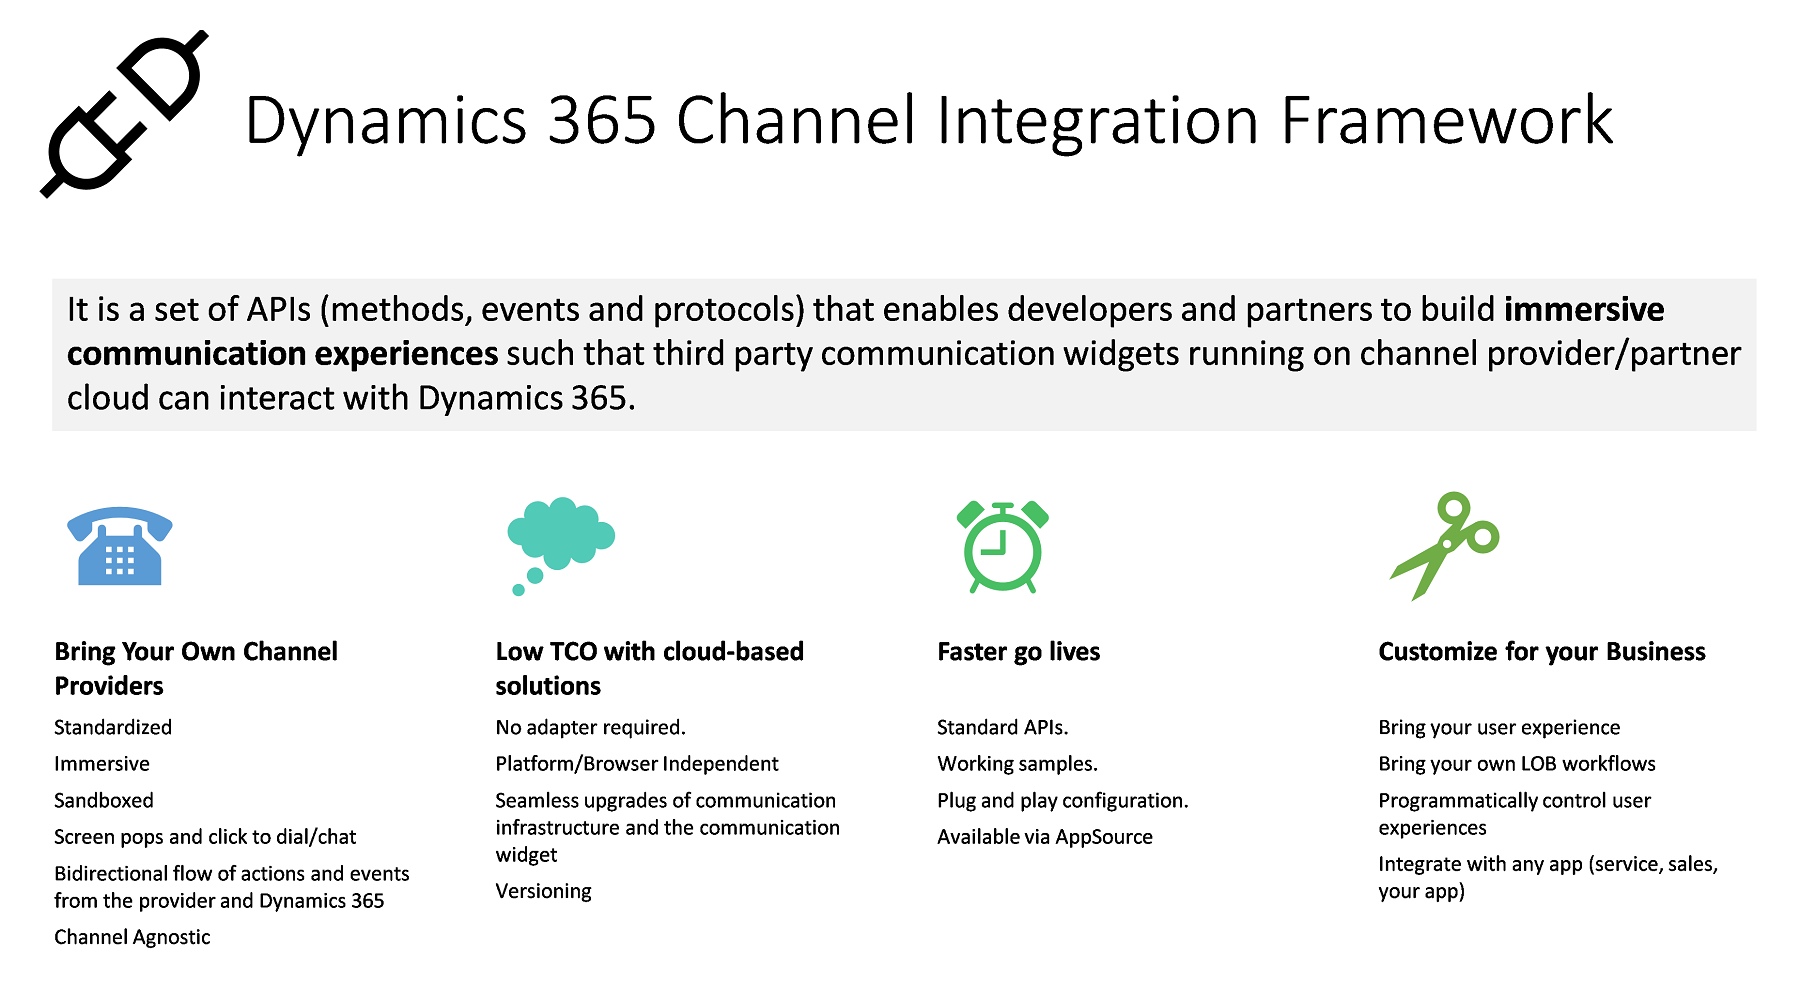 General Availability: Dynamics 365 Channel Integration